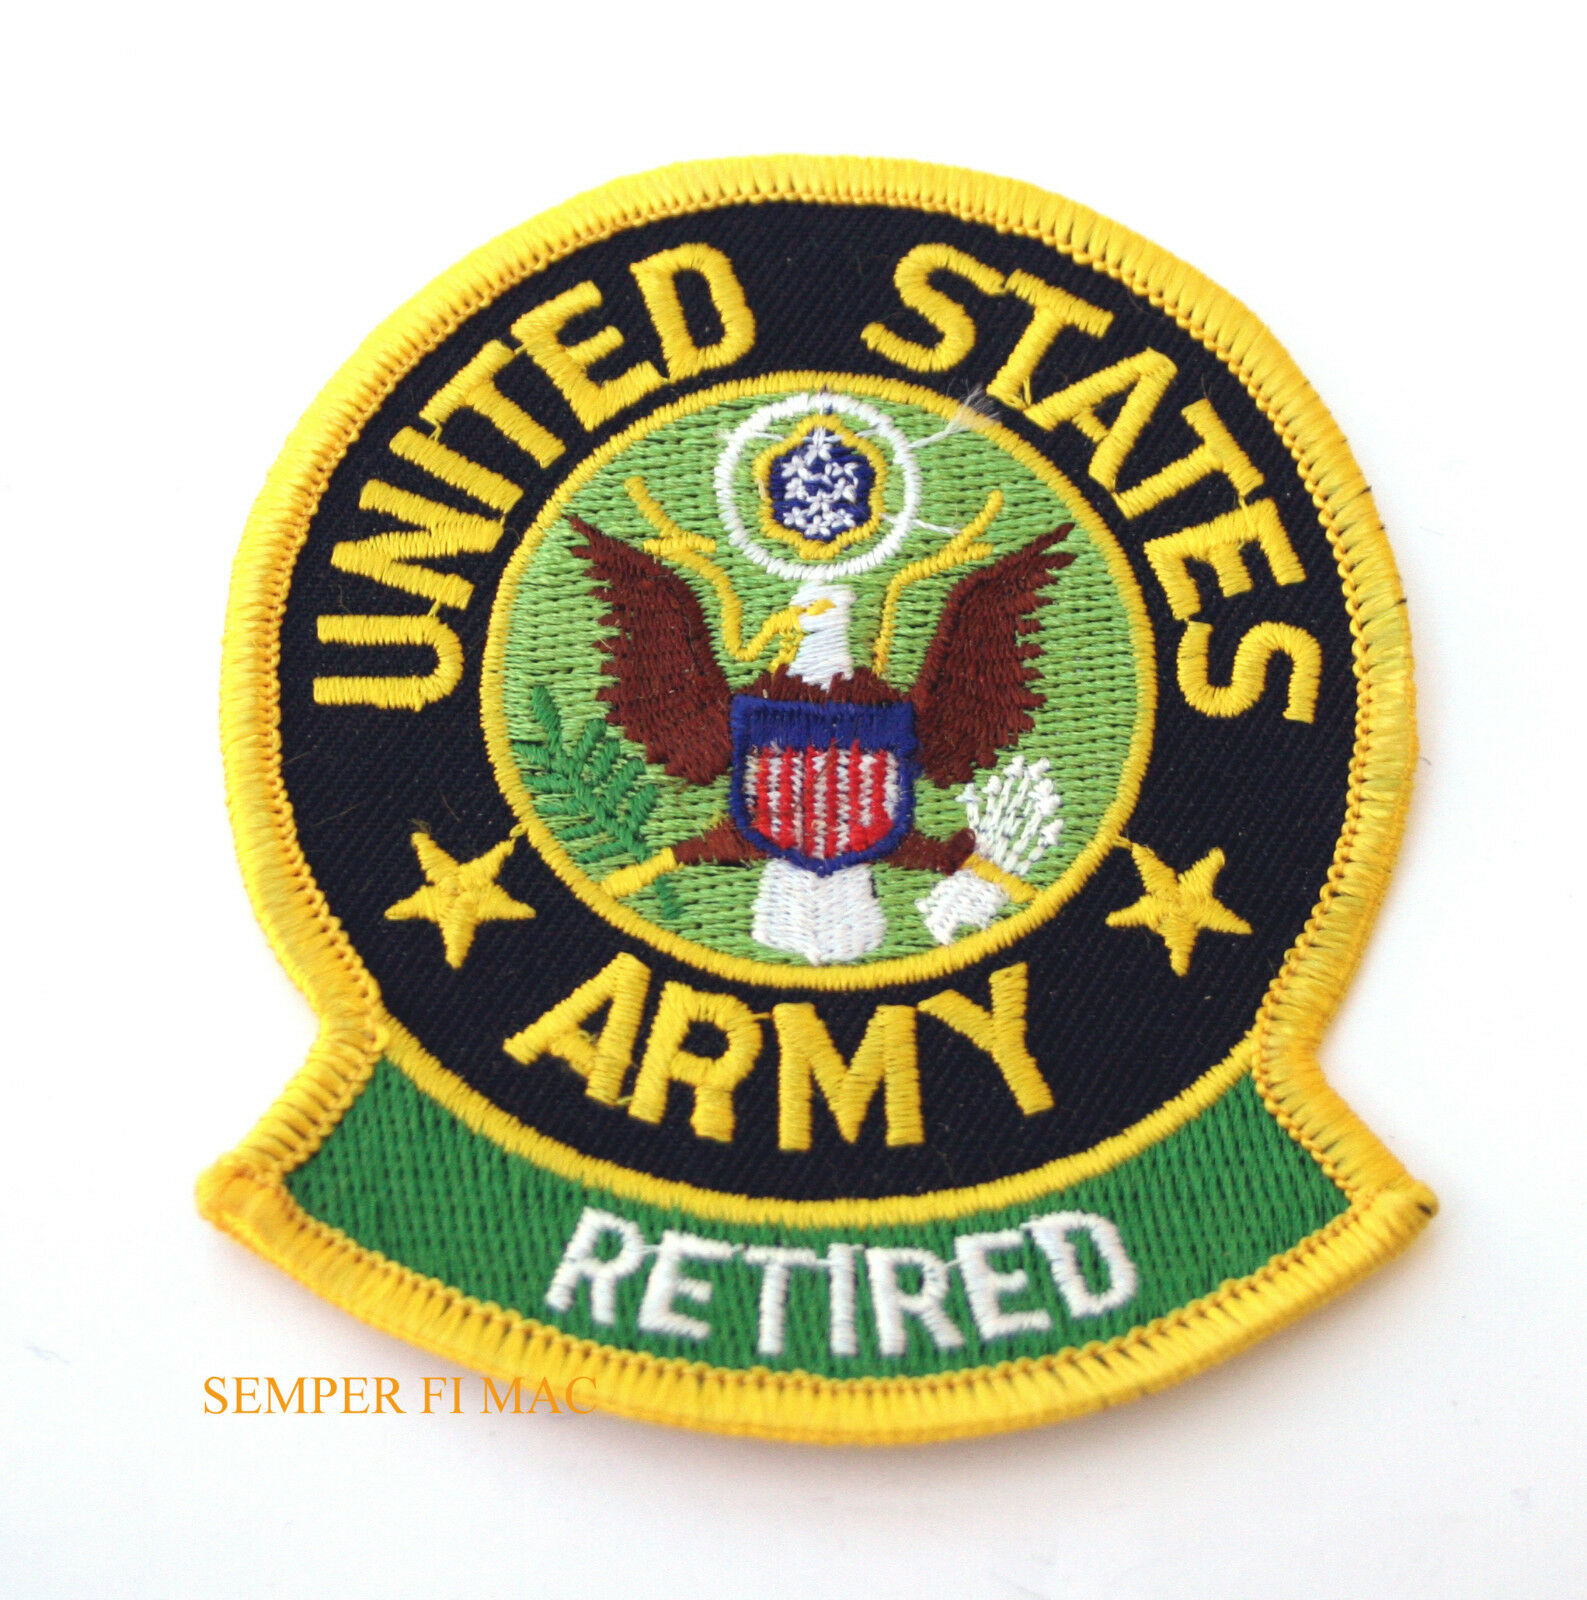 United States Army Retired hat//lapel pin Buy two get one FREE